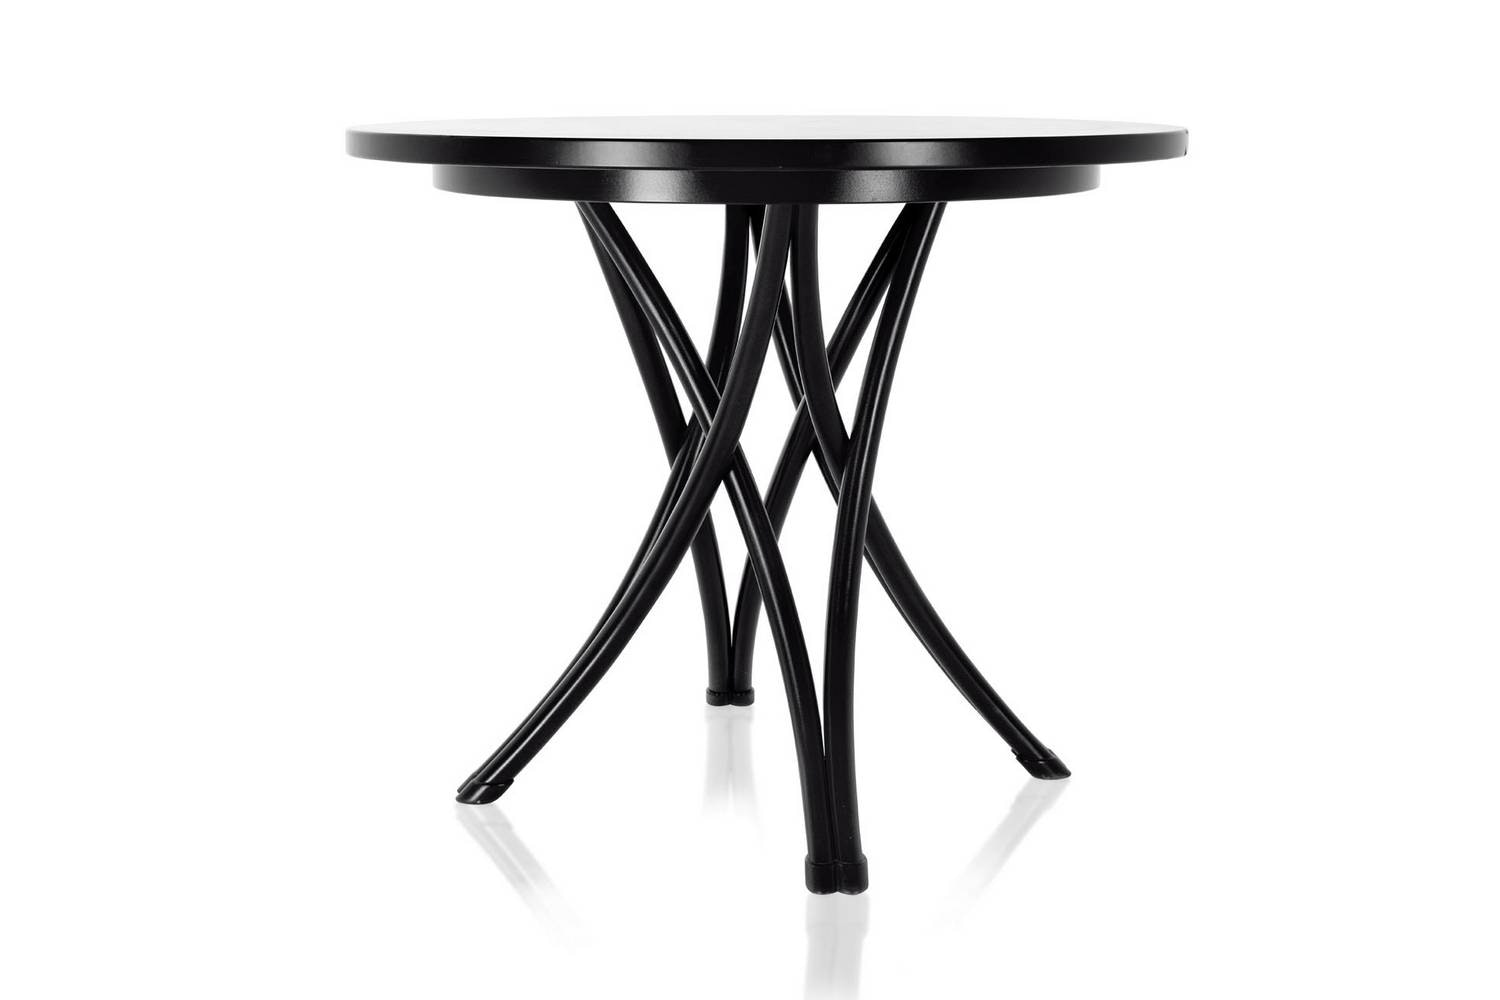 Rehbeintisch Table by Gebruder Thonet Vienna for Wiener GTV Design